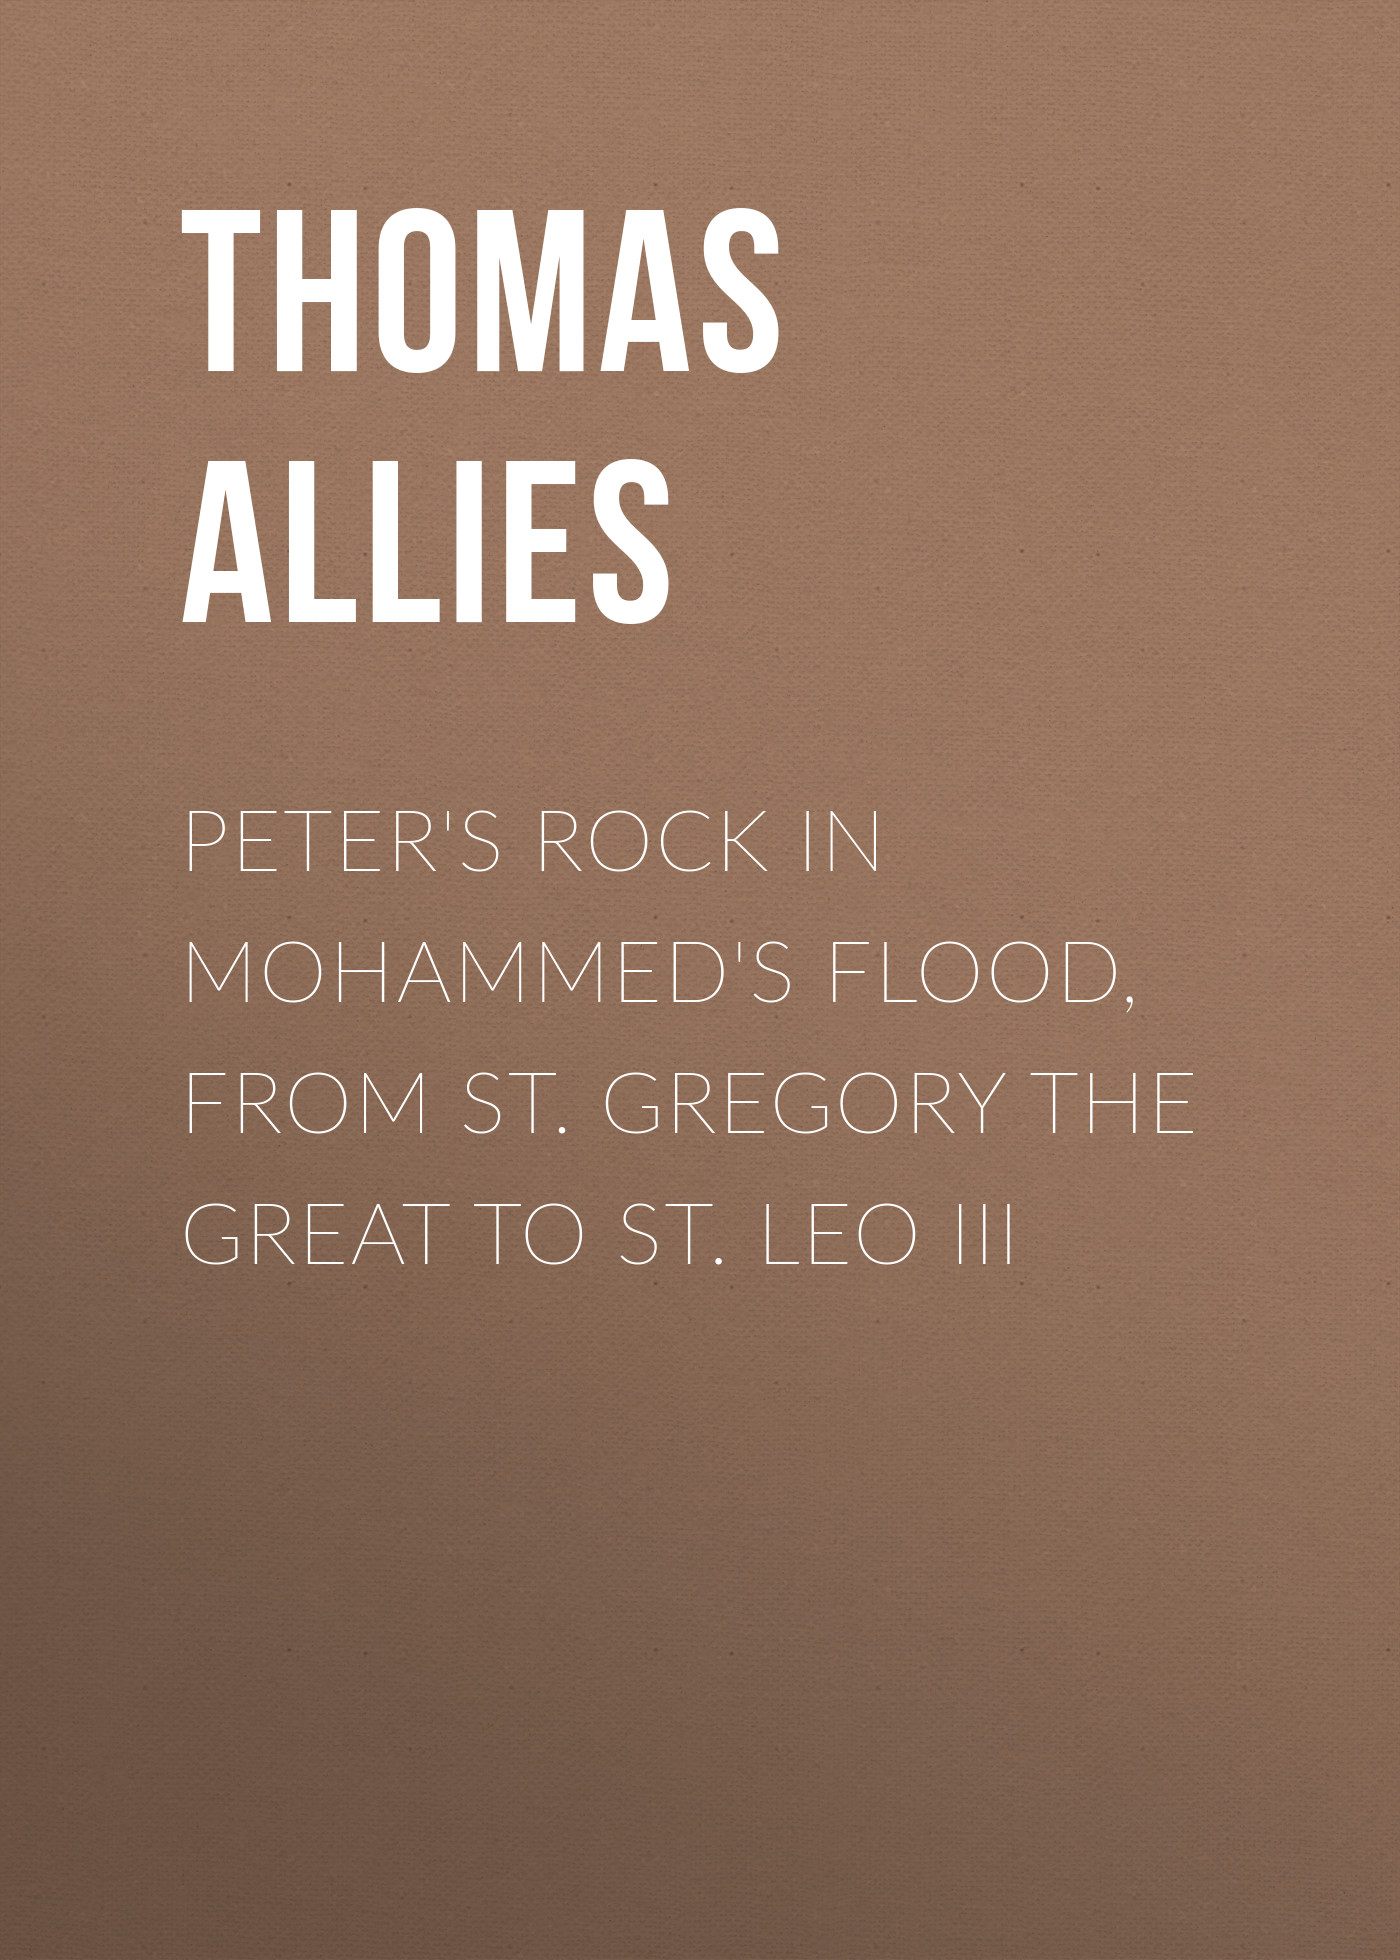 Allies Thomas William Peter's Rock in Mohammed's Flood, from St. Gregory the Great to St. Leo III l7912cv to 220 st 12v l7912